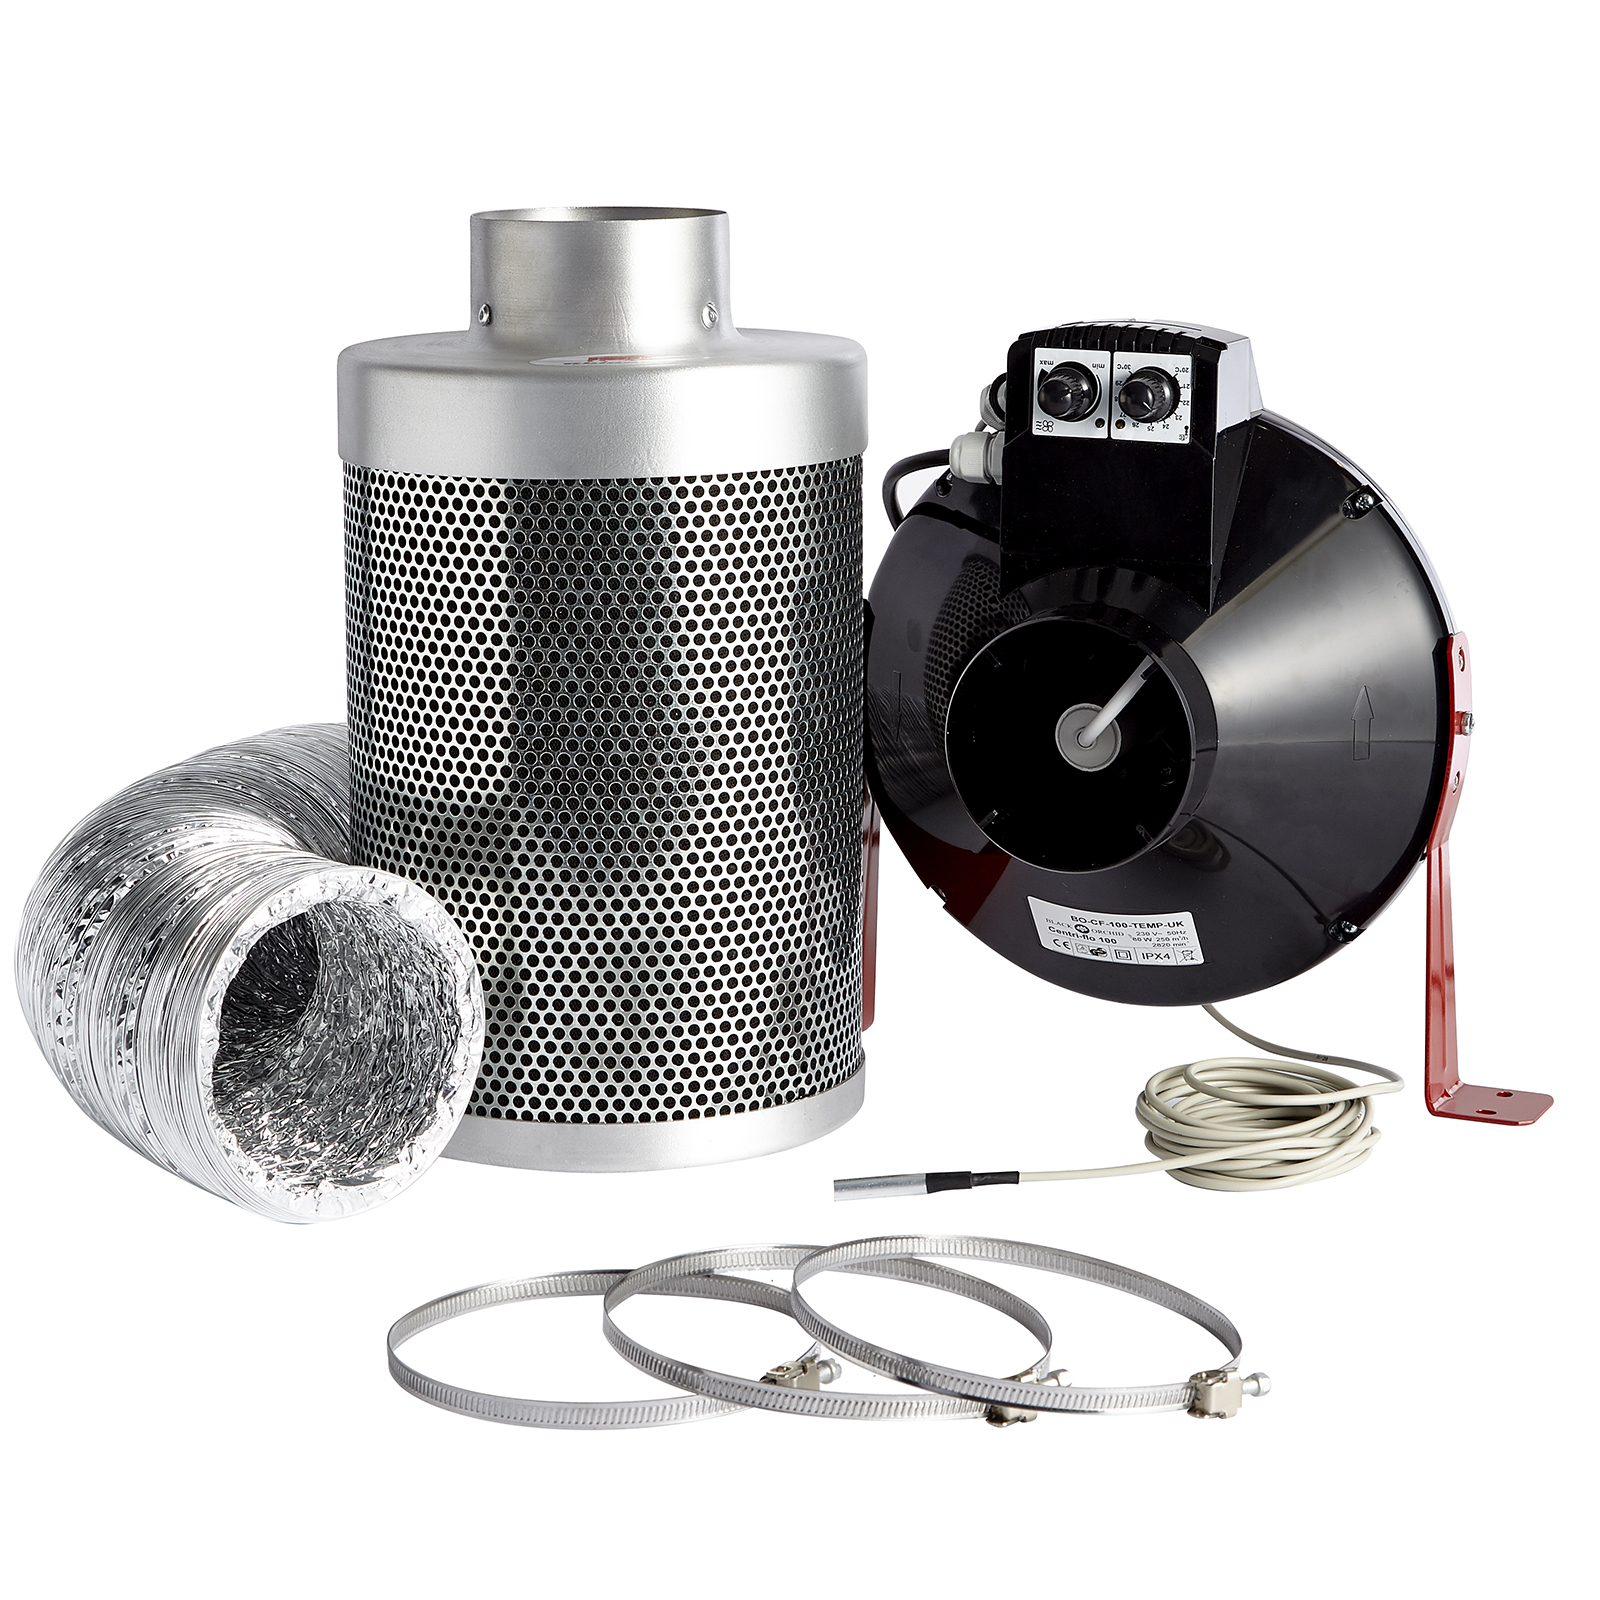 4inch  200mm Air Fan /& Filter Extraction Kit Hobby Carbon Filter Hydroponics